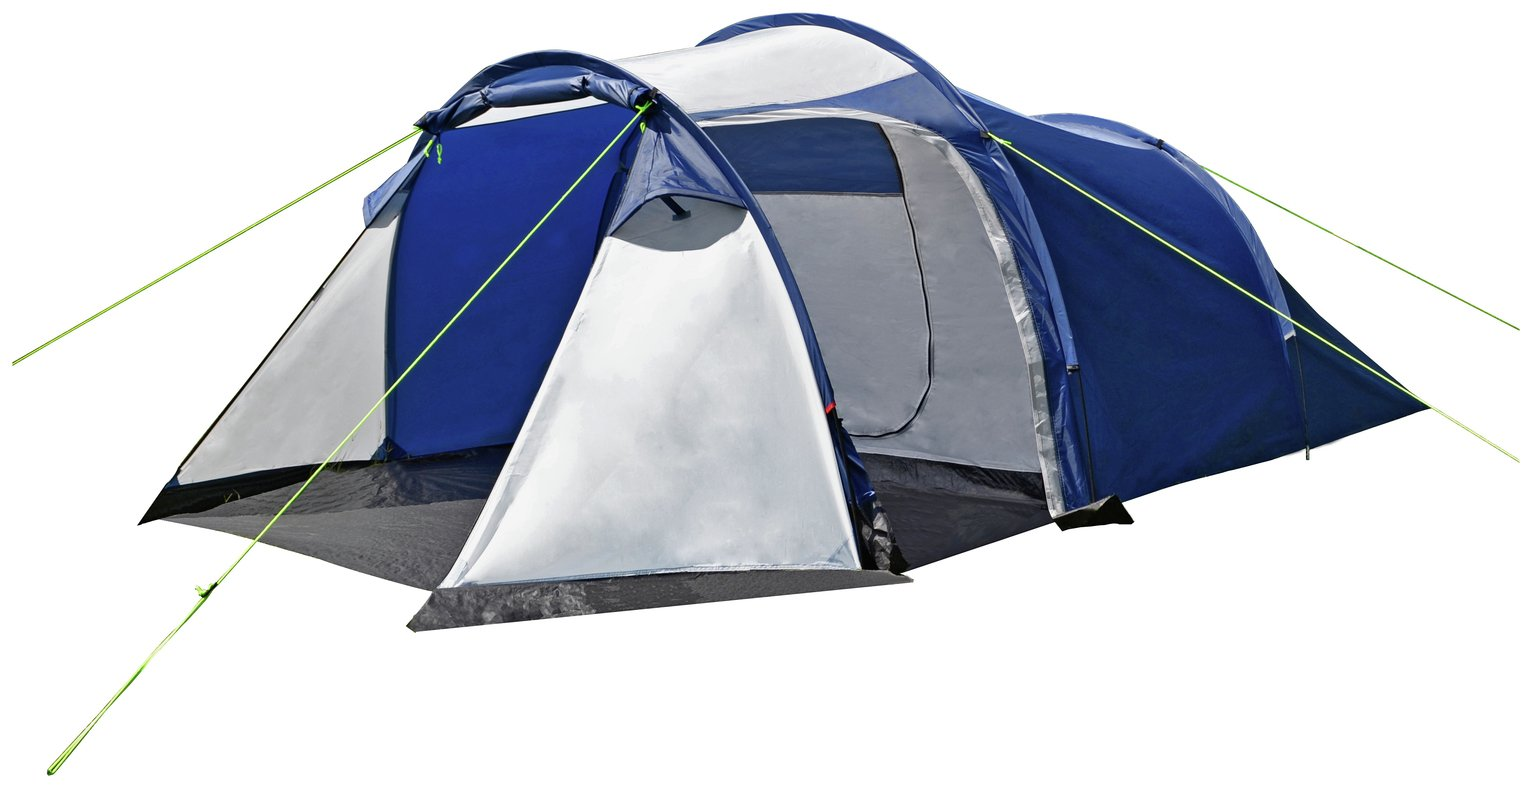 Trespass 4 Man 1 Room Tent